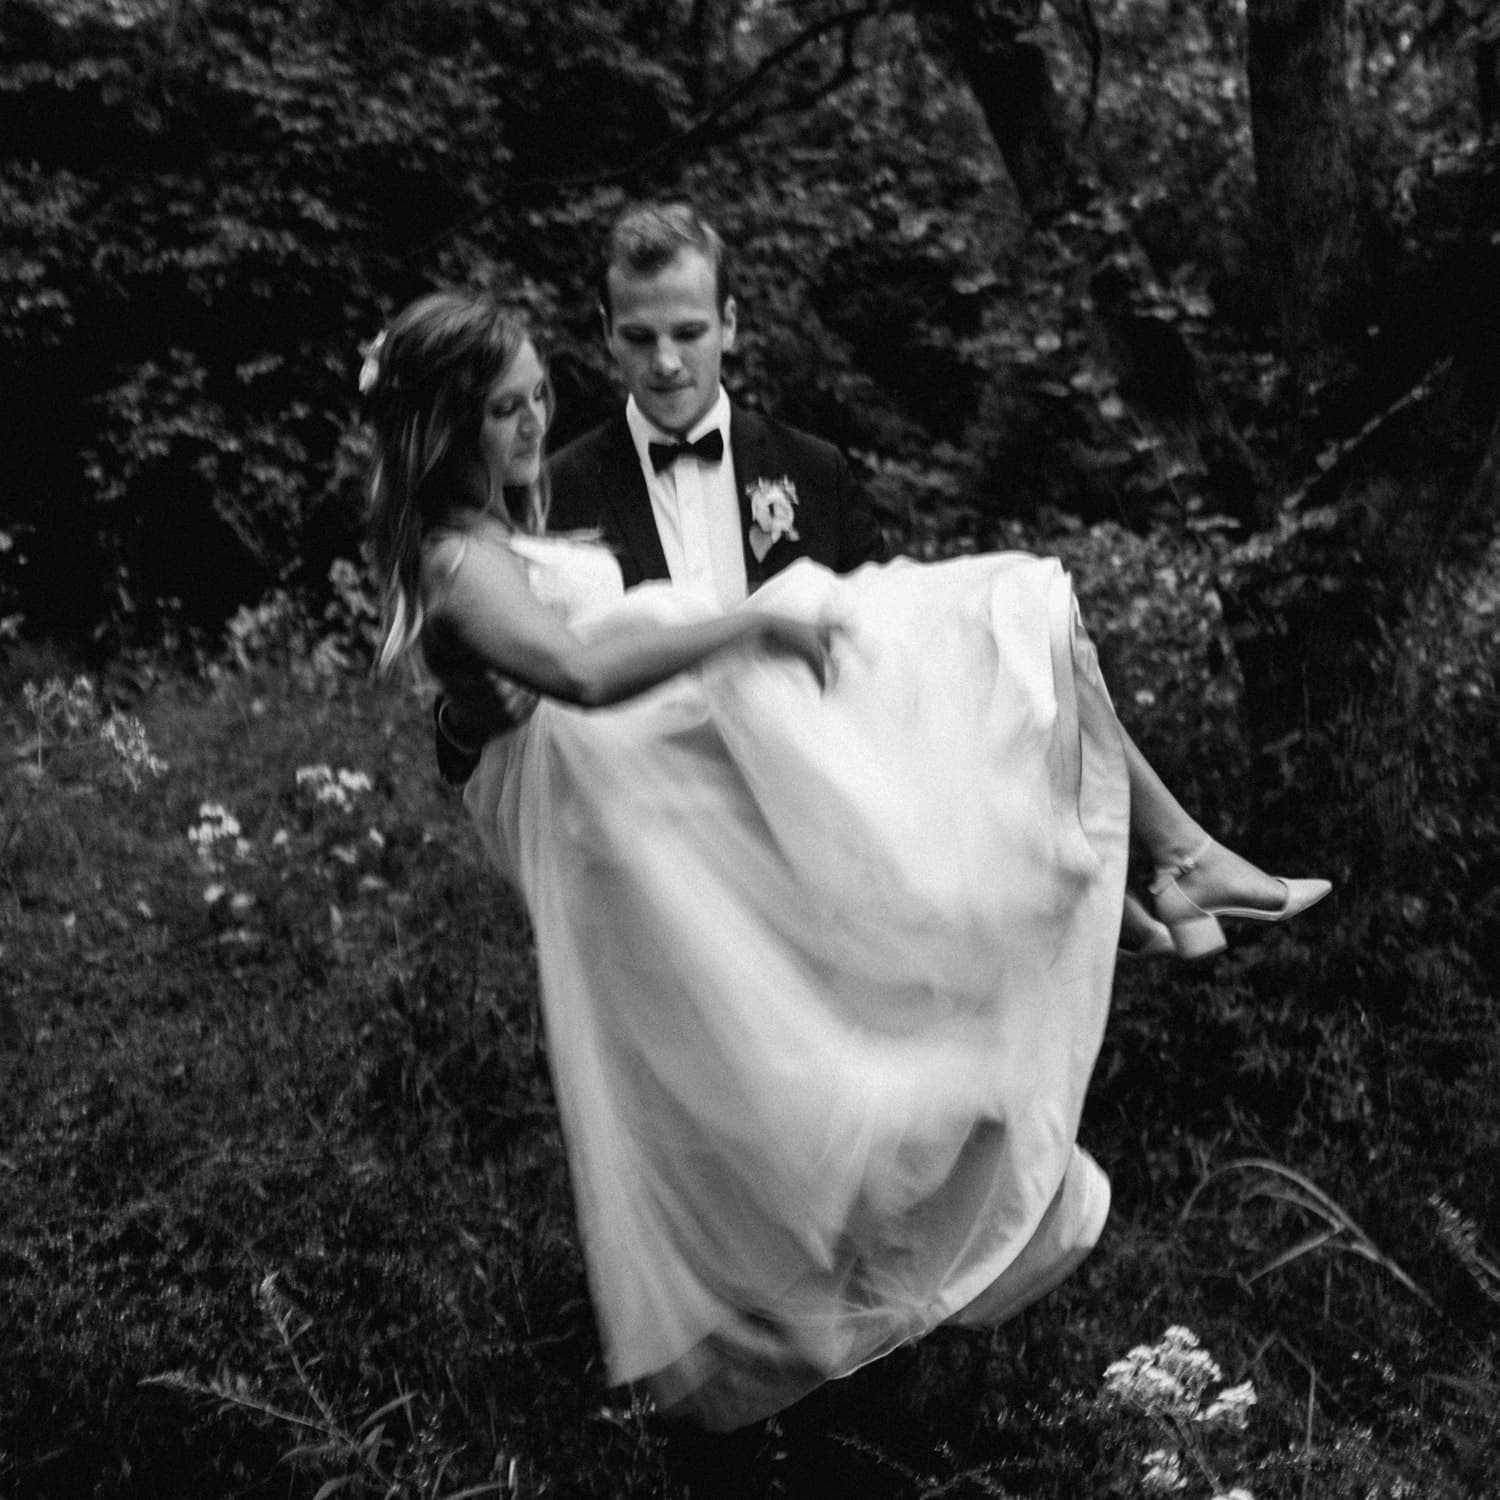 groom carries bride during portraits